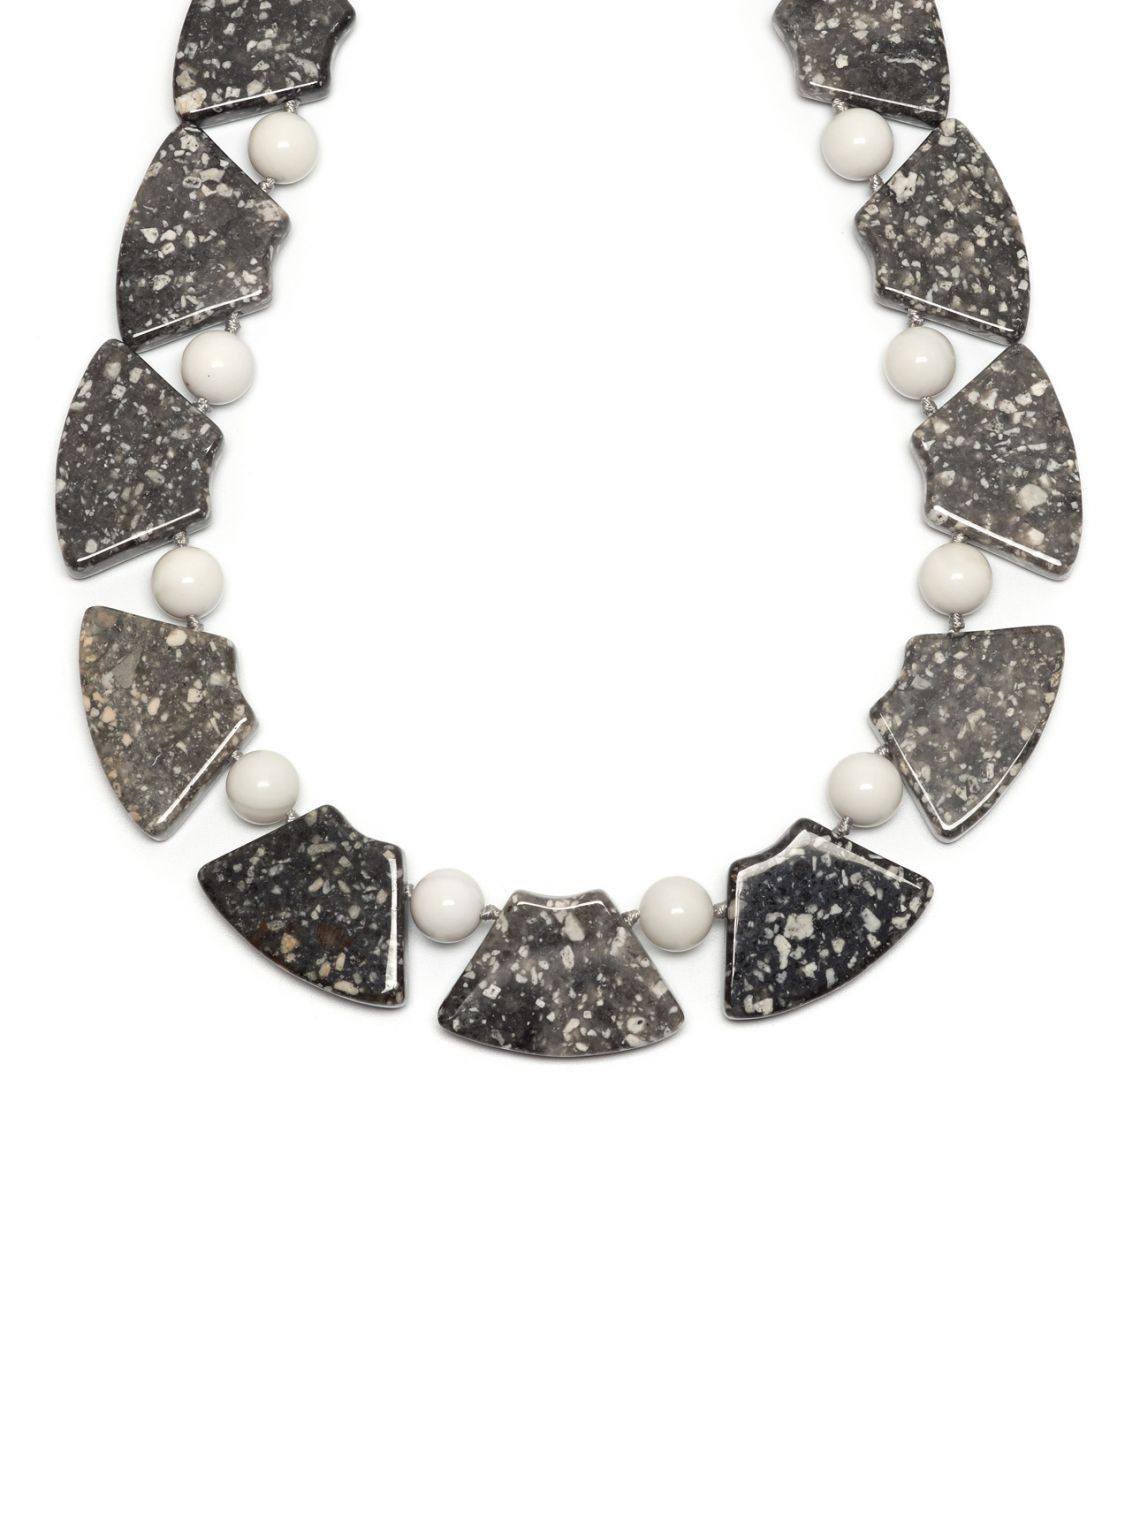 Wallace Necklace